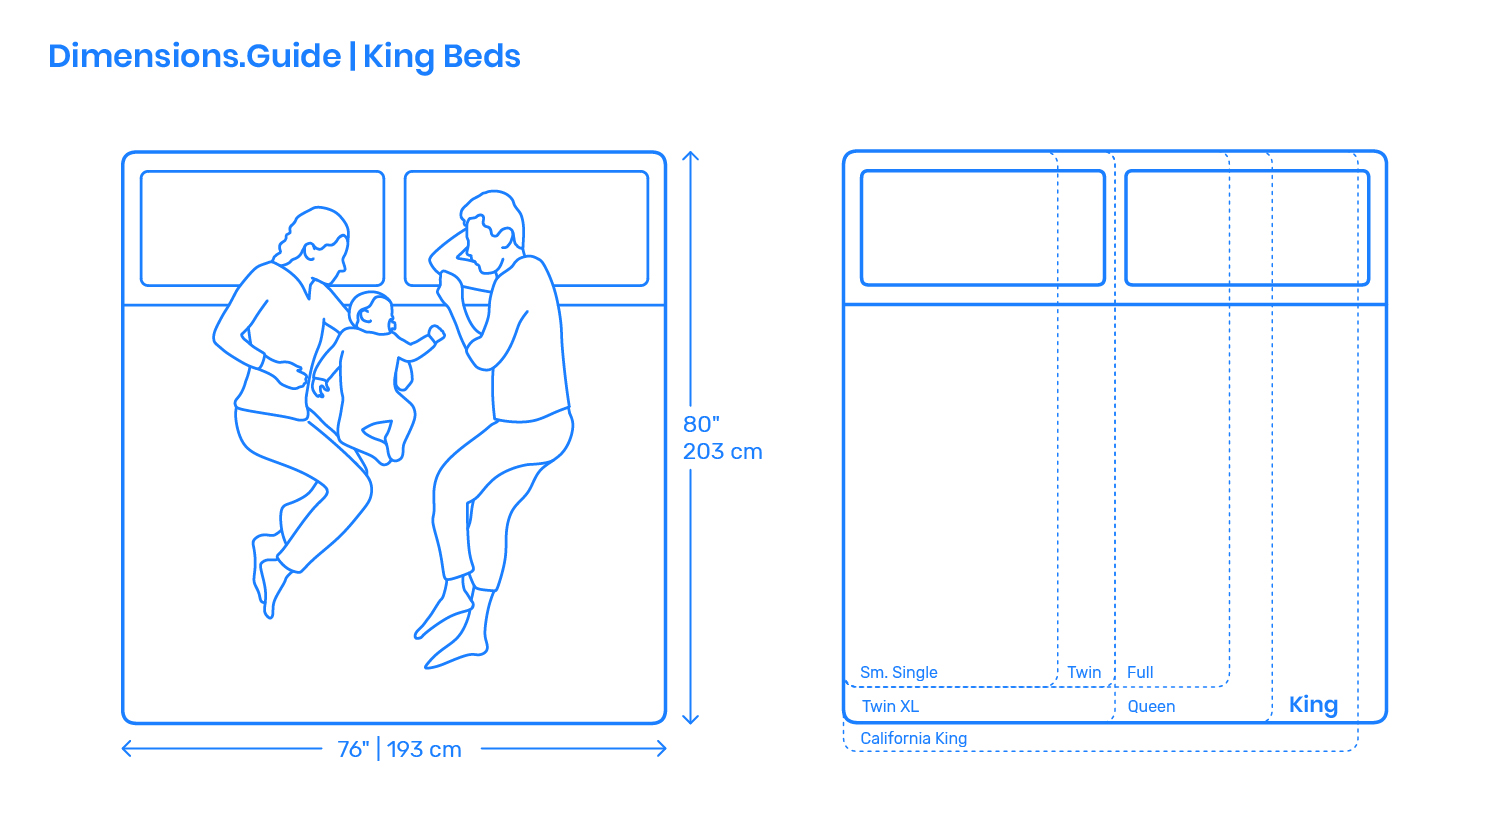 King Size Bed Dimensions Drawings Dimensions Guide